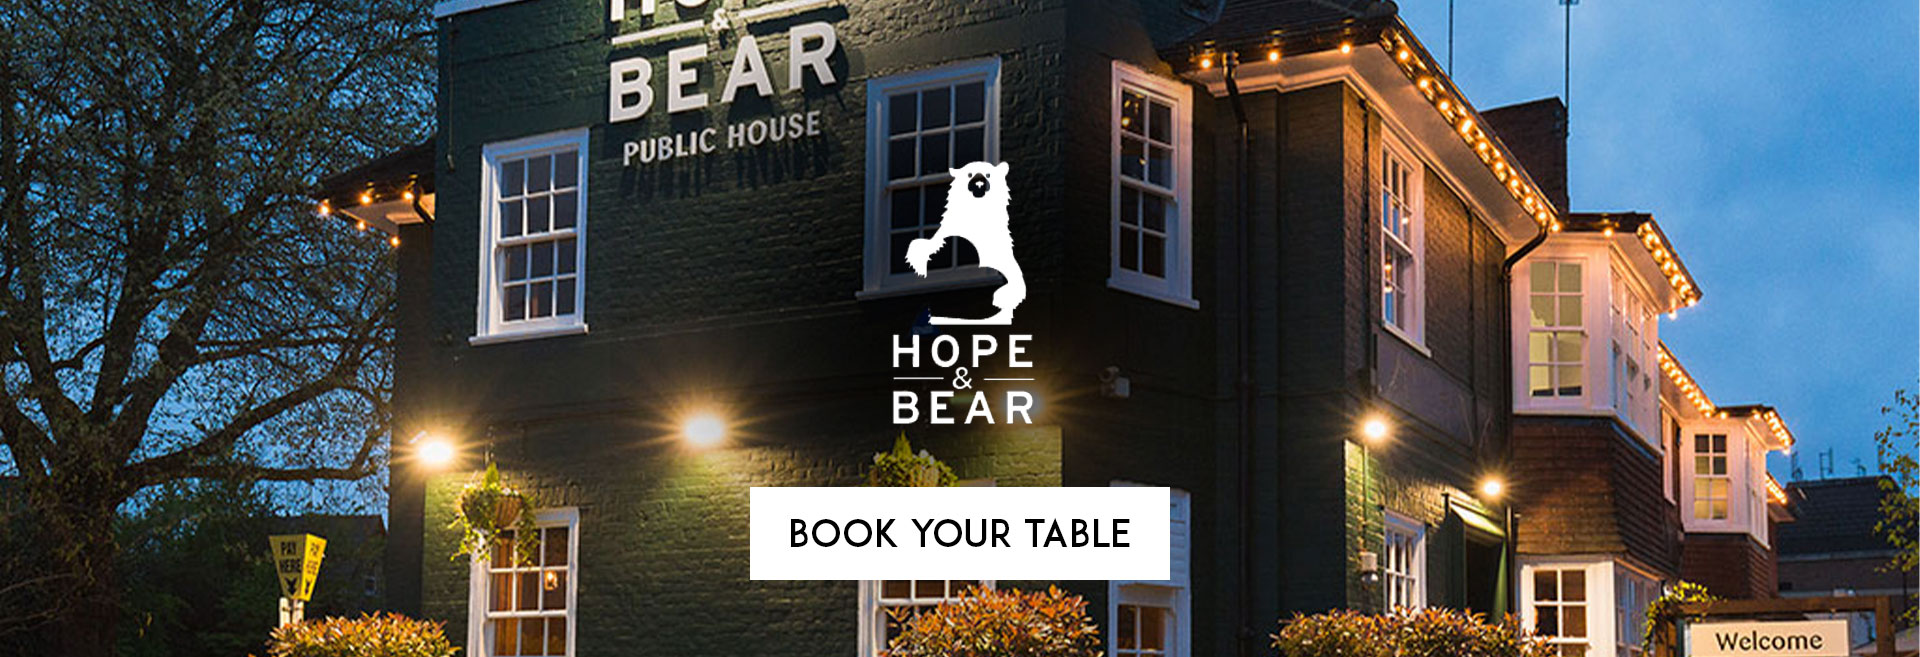 Book Your Table The Hope & Bear